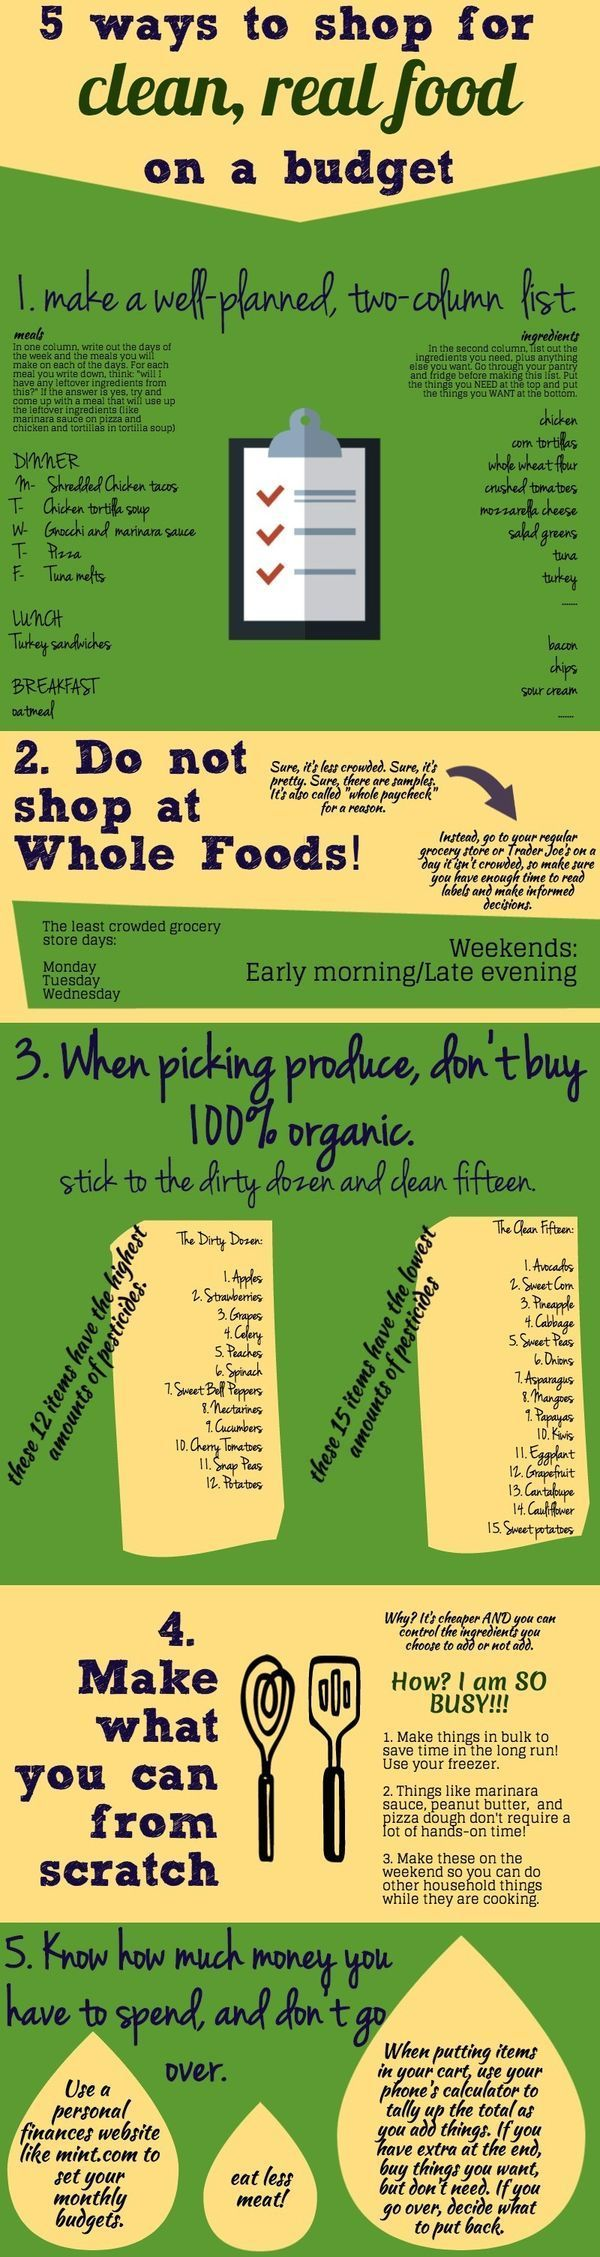 5 ways to shop for clean real food on a budget including what to buy organic and what not to, and how to make a well-organized grocery list.